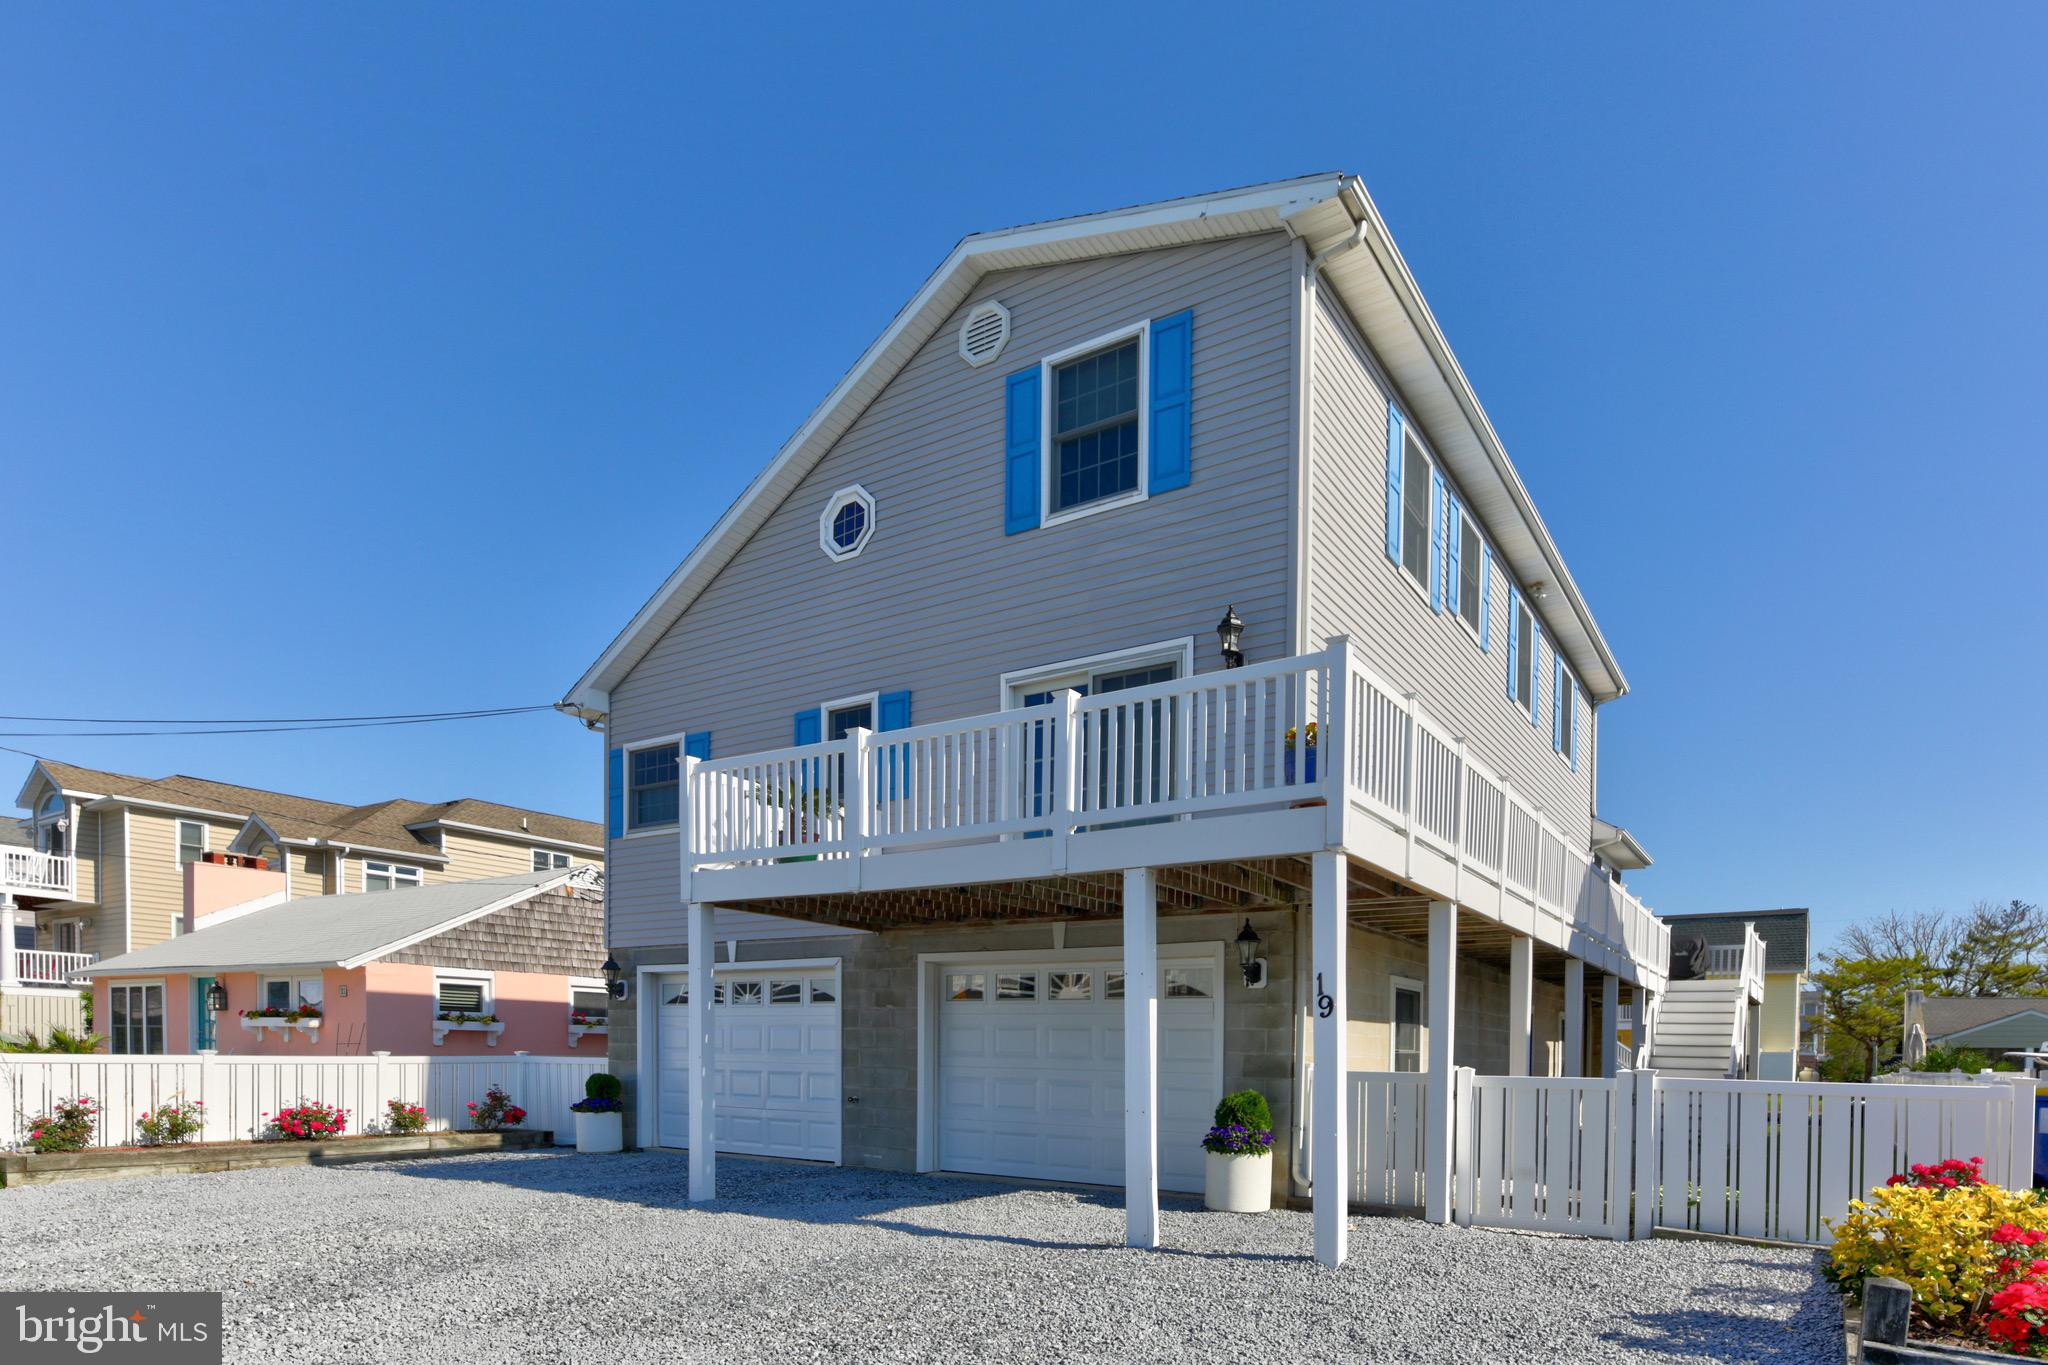 Tour this home virtually by pasting link into your browser!   https://my.matterport.com/show/?m=JDNxzQXZ28j&mls=1    Live your best beach lifestyle at this Fenwick Island bayside/canalfront single family home. Raised Salt Box design offers close to 2000 square feet, 4 bedrooms, 2 full baths and 2 half baths.  340+ square feet of wraparound, low-maintenance composite deck with gas grill hooked to propane tank for outdoor grilling enjoyment. The 12x28 three-season sunporch with vinyl tech windows overlooks the canal and provides a great spot for relaxation and bay breezes! 2 car attached garage with additional 500+ square foot storage room and 1/2 bath that leads to the backyard, beach shower w/changing area and the canal. Interior features include gas fireplace with blower, vaulted ceilings in living room, large kitchen island/bar with corian countertops, stainless steel appliances, master bedroom facing south with deck access and peek of bay, laundry room, loft for additional living space, and walk-in attic space. House has dual zone heat pumps (outside units approx. 2-3 years old) backup baseboard heating, Maytag washer/dryer approx. 6-7 years old, and kitchen appliances approximately 4-5 years old. Great location with an easy walk to the beach, restaurants and shopping on a no-outlet street.